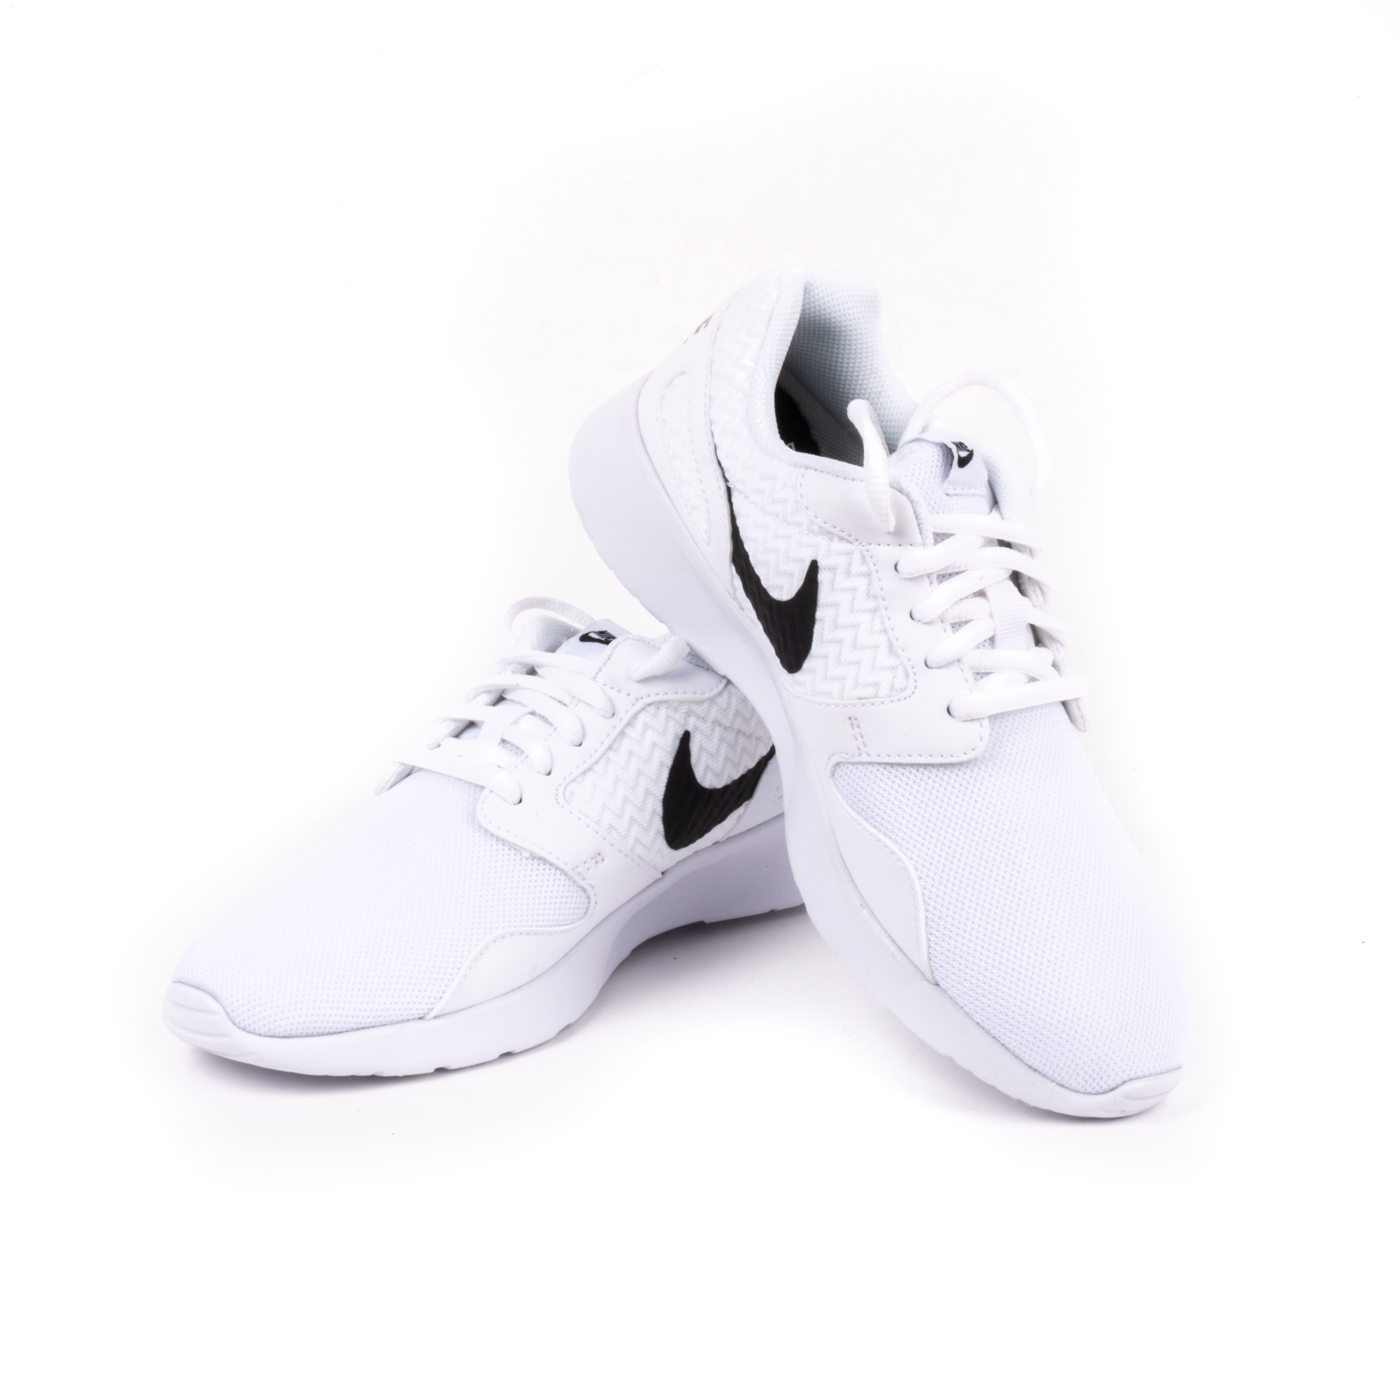 comprare on line 16883 21fe3 Nike - Sneakers basse da running donna